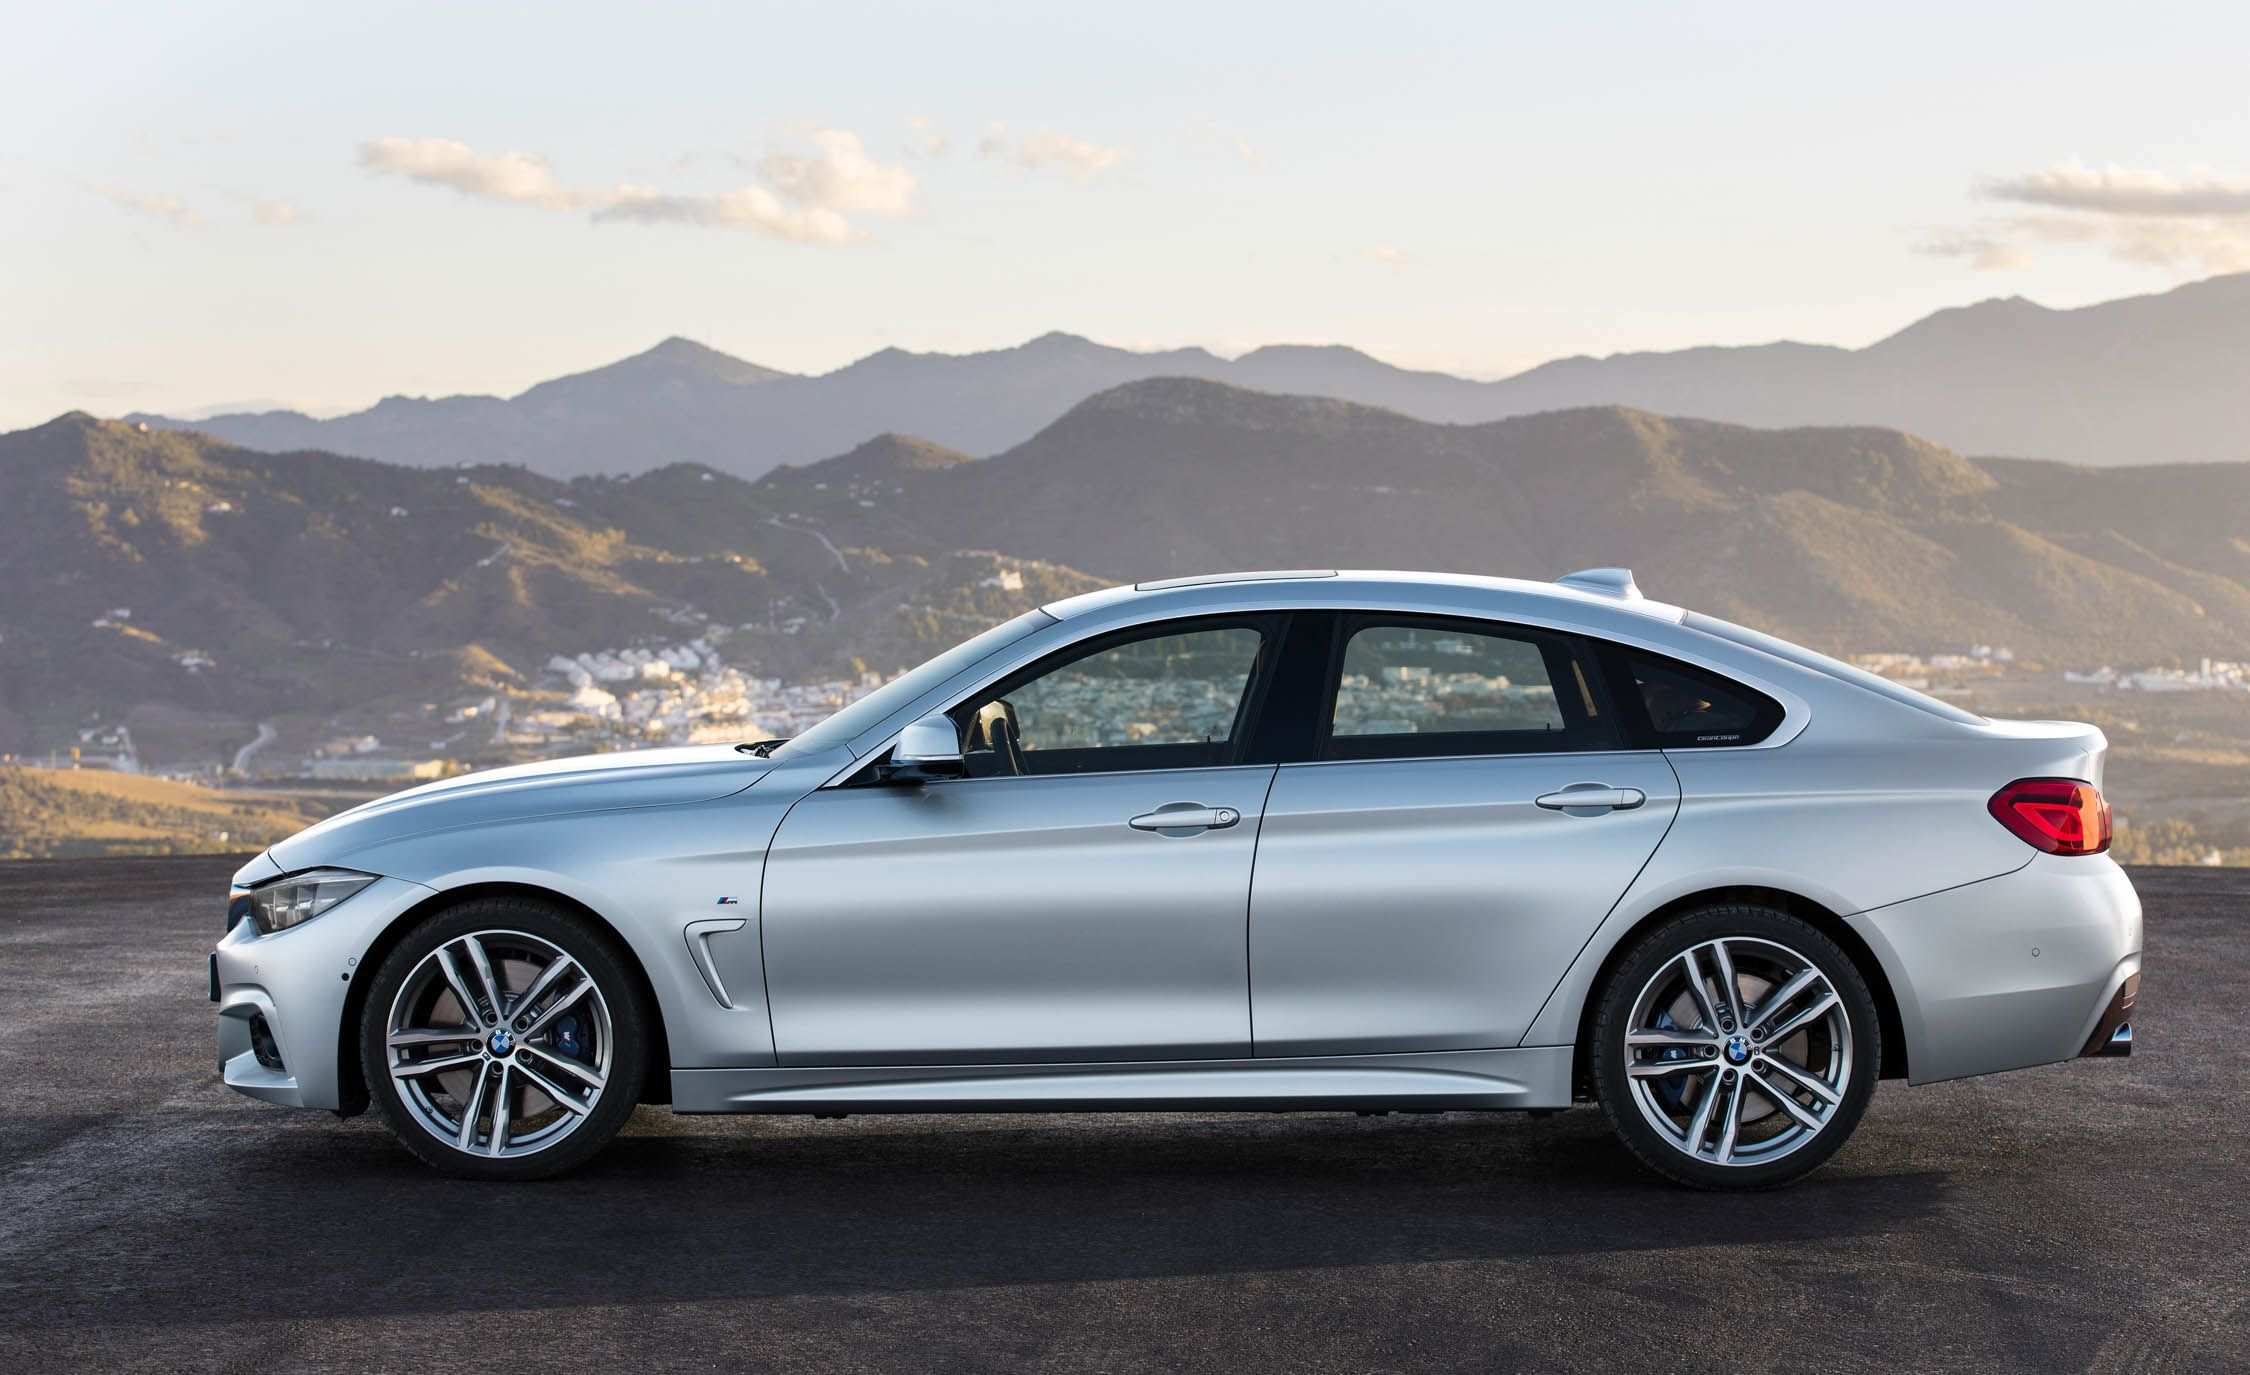 55 Concept of 2020 Bmw 4 Series Gran Coupe Interior with 2020 Bmw 4 Series Gran Coupe